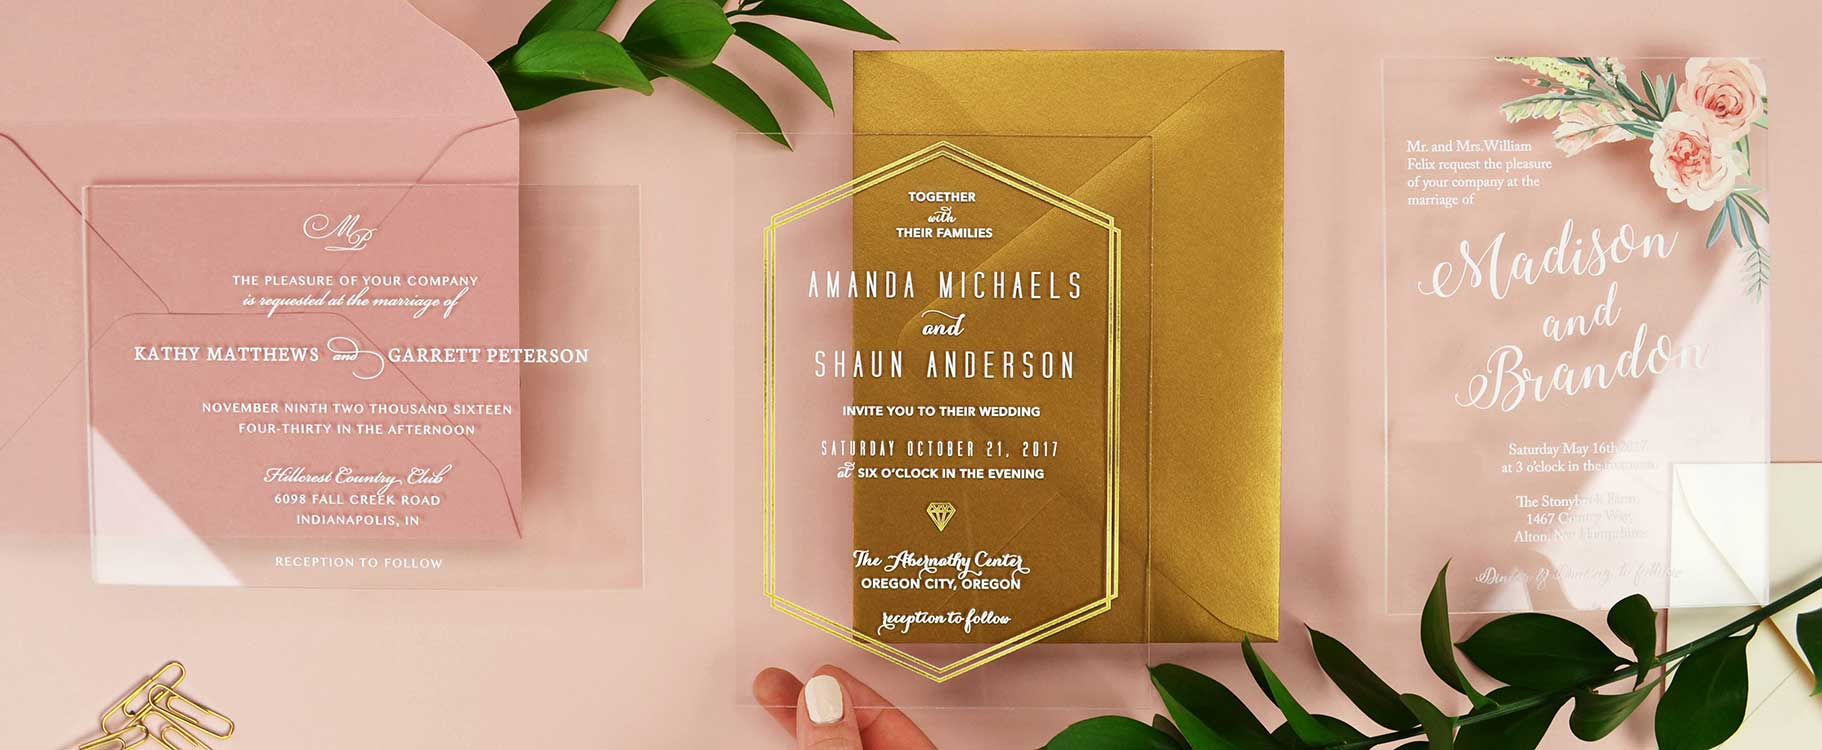 Acrylic Custom Wedding Invitation Design